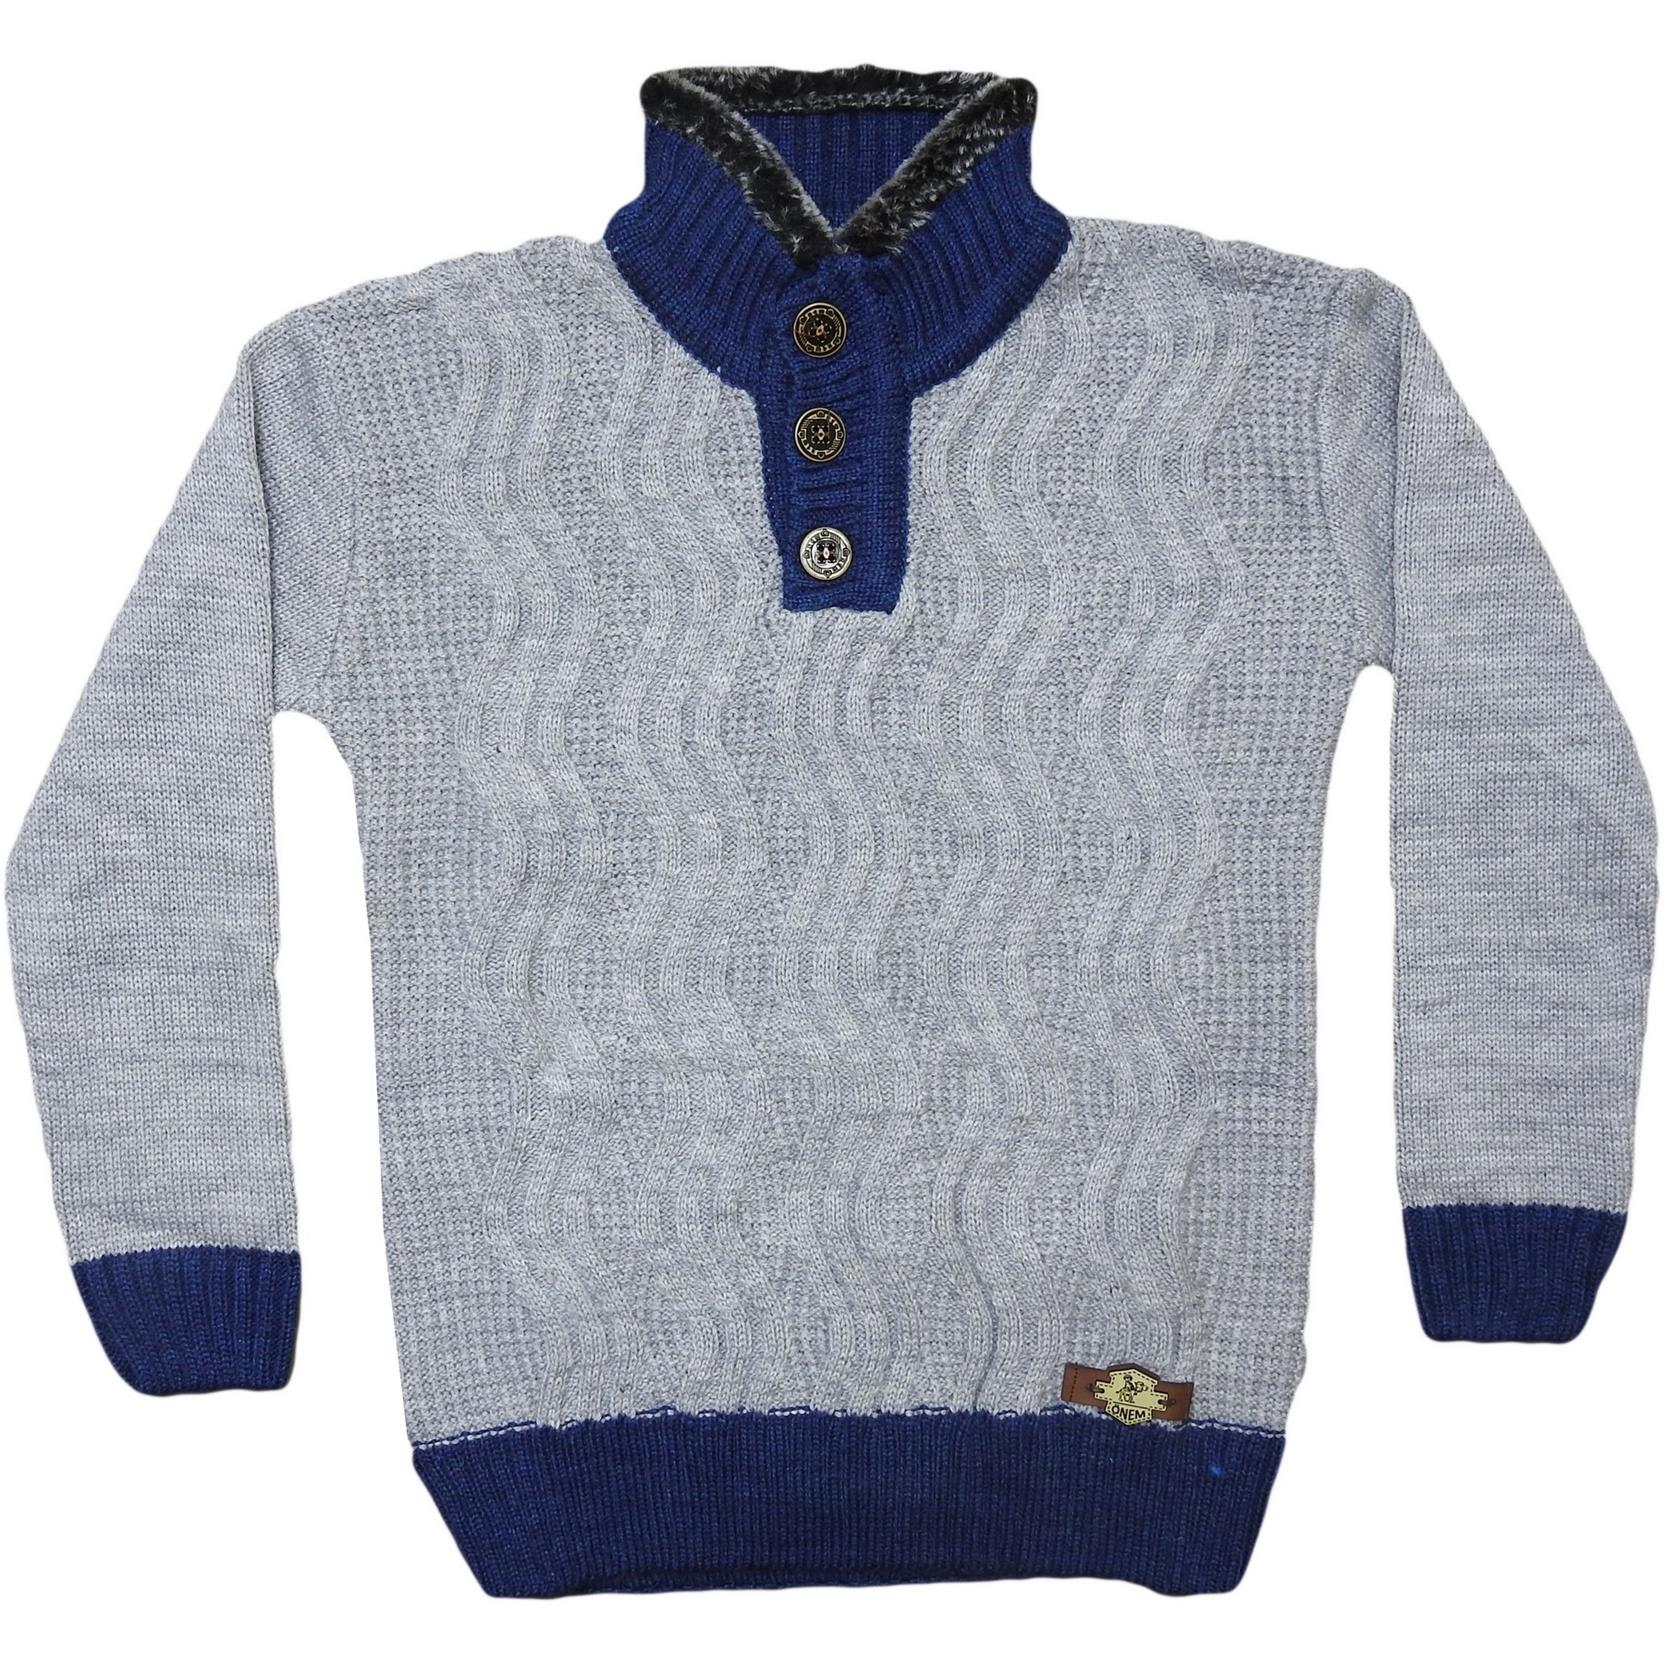 309 wholesale children's winter knitted pullovers,jumpers with buttons and with a fluffy collar,for boys for 5-7-9 age